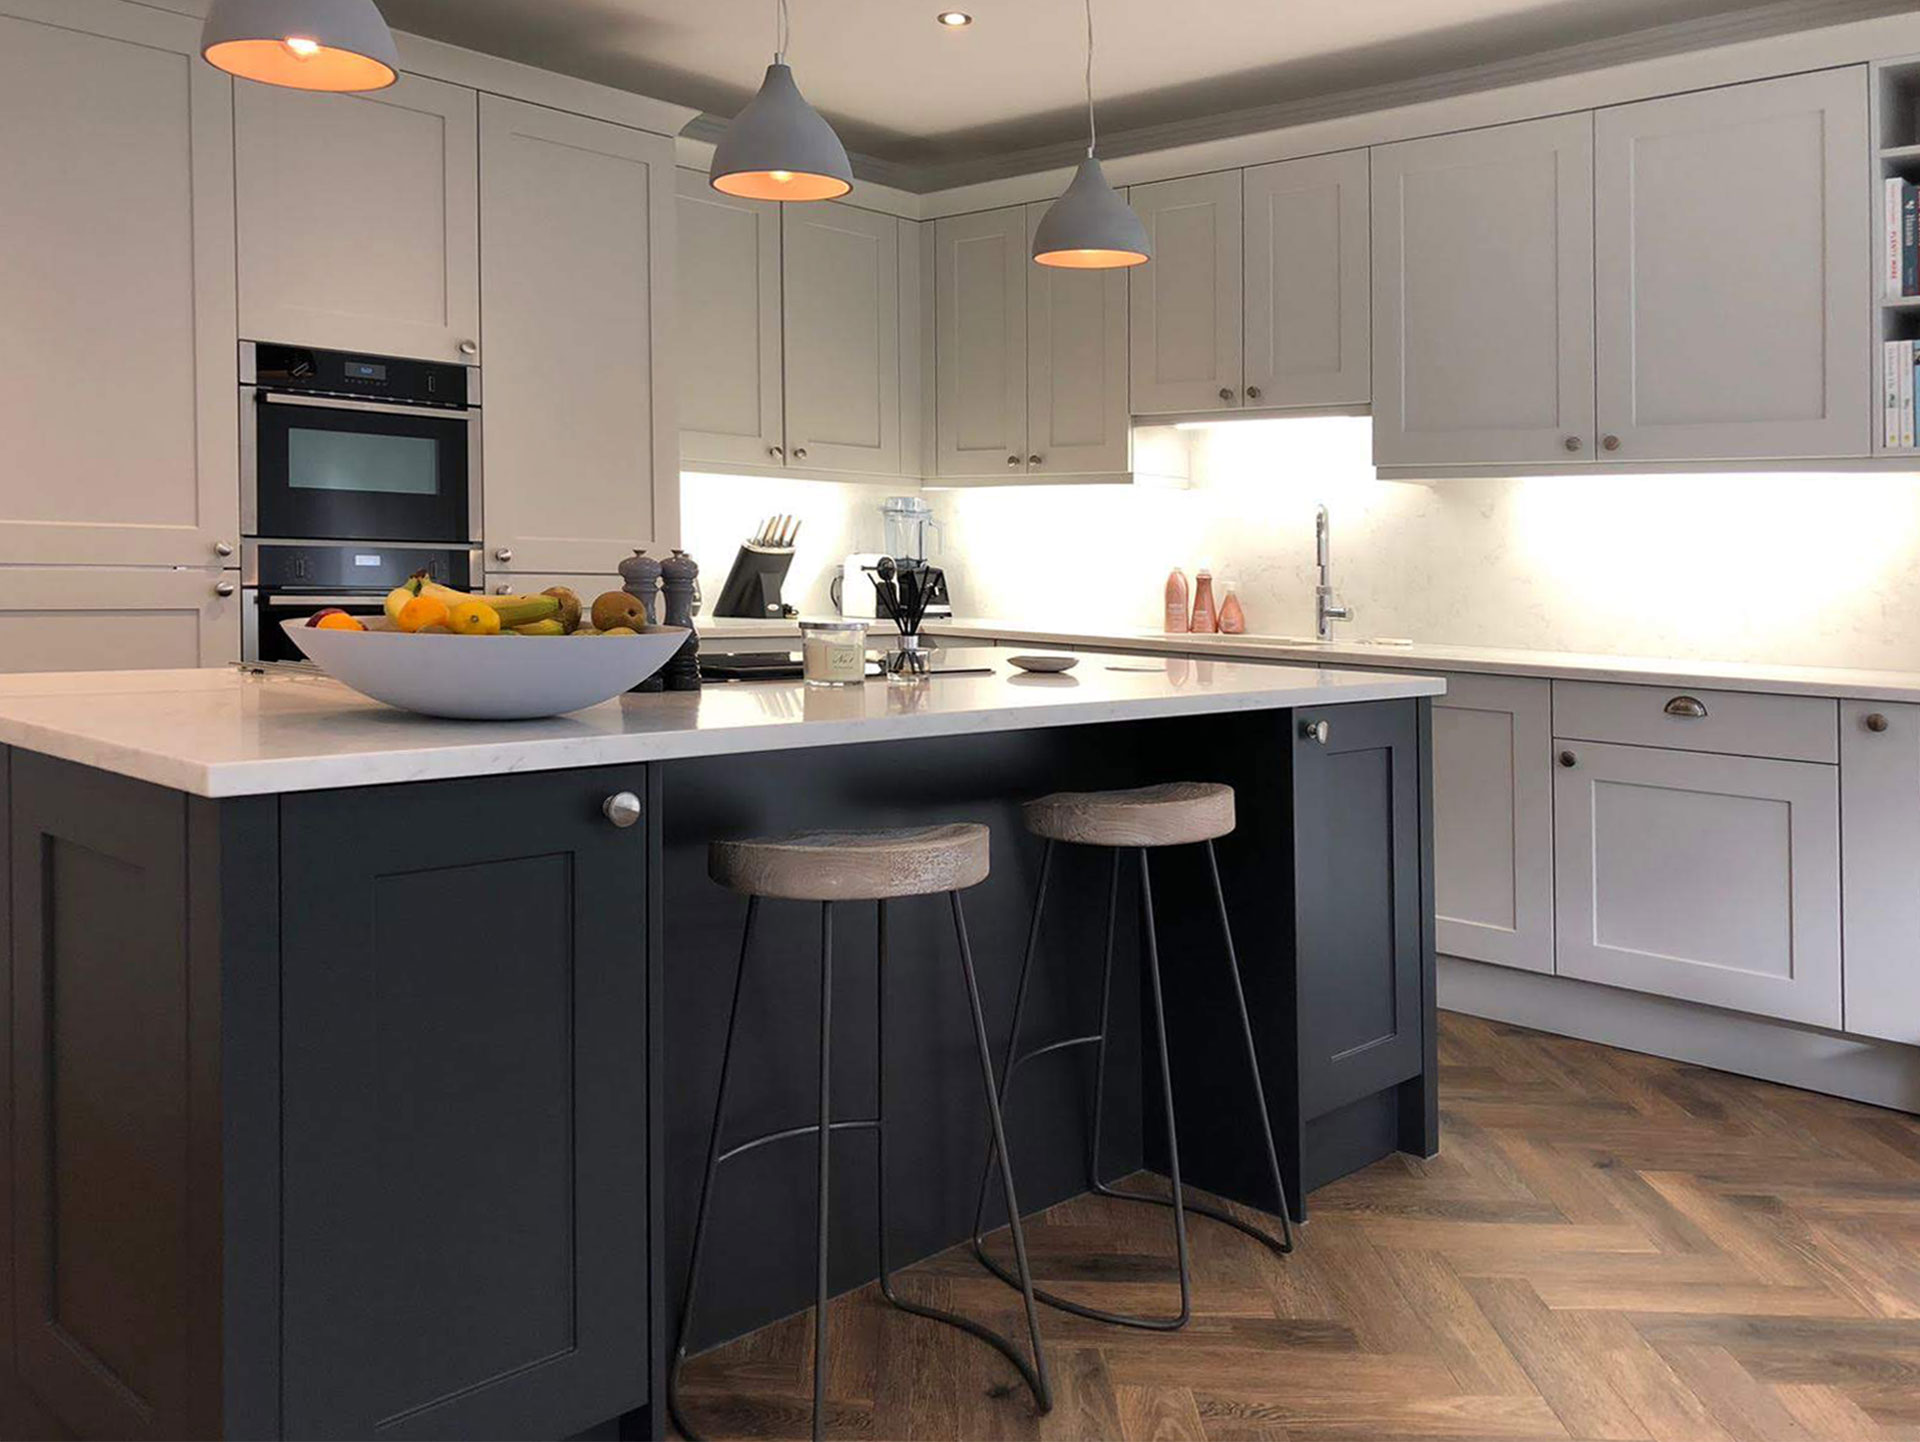 Simon Fink Kitchens completed project sample